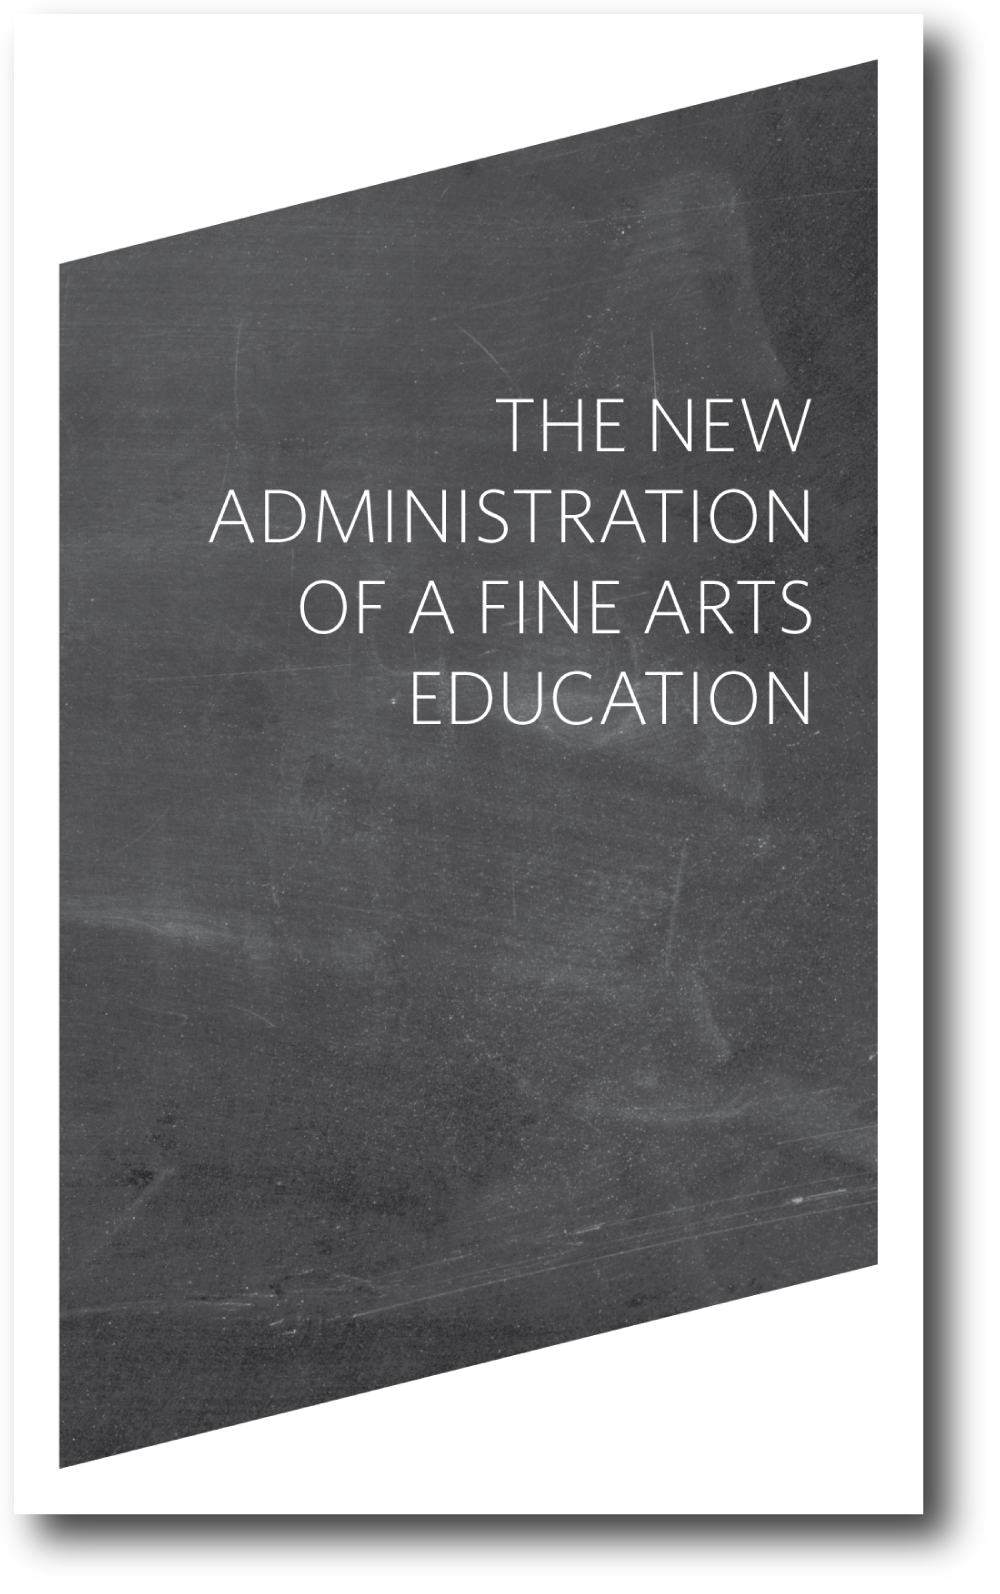 The New Administration of a Fine Arts Education , published by Bureau for Open Culture, 2011; designed by Nate Padavick;60 pages;8.25 x 5 inches